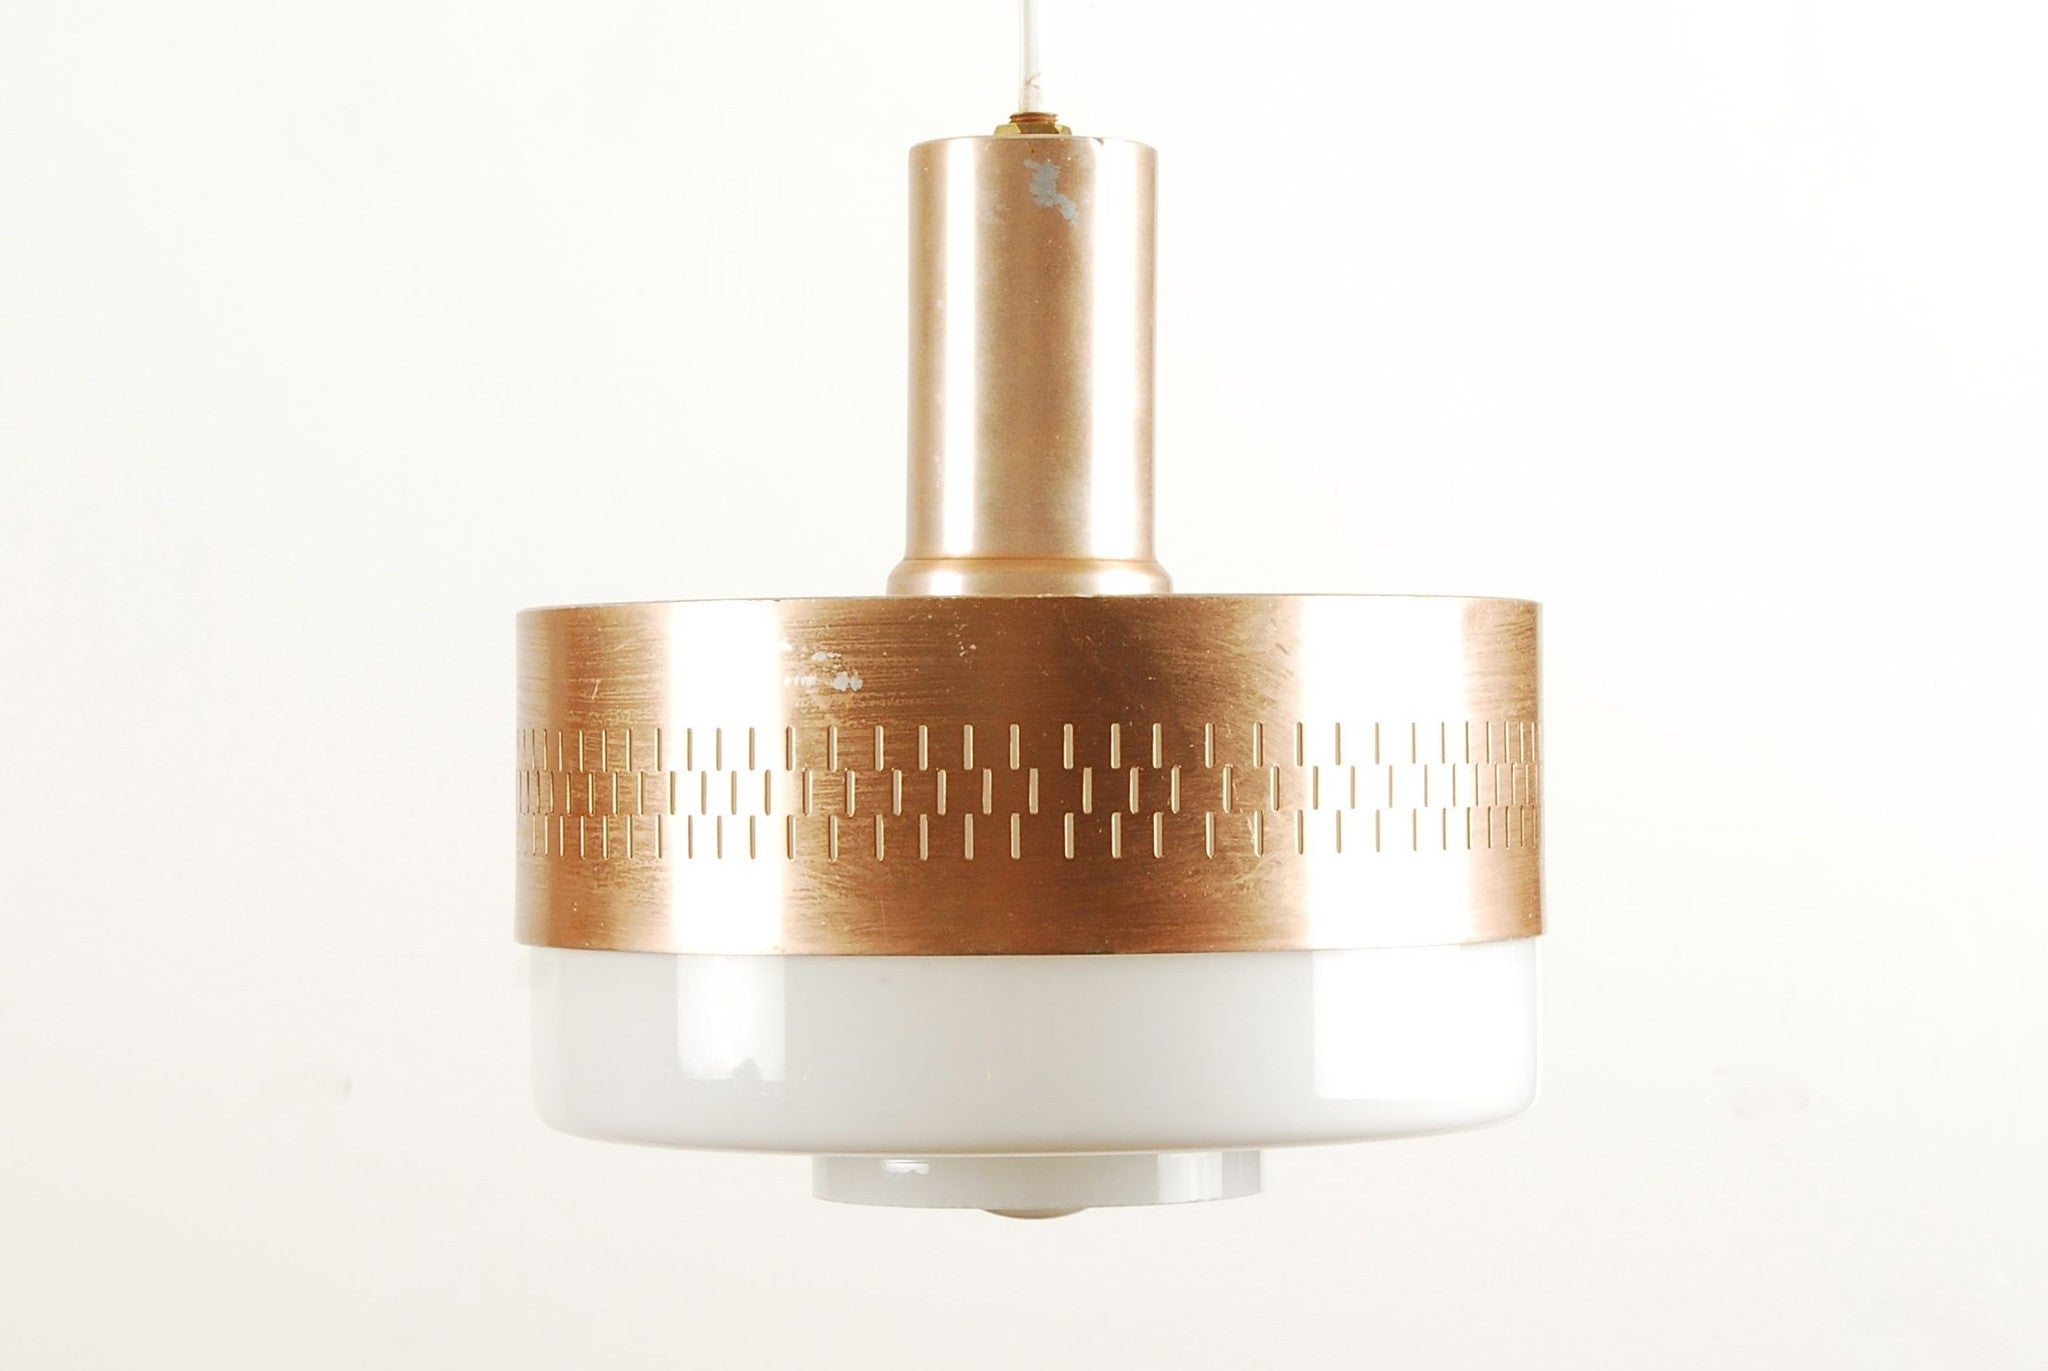 Ceiling lamp by Bent Karlby